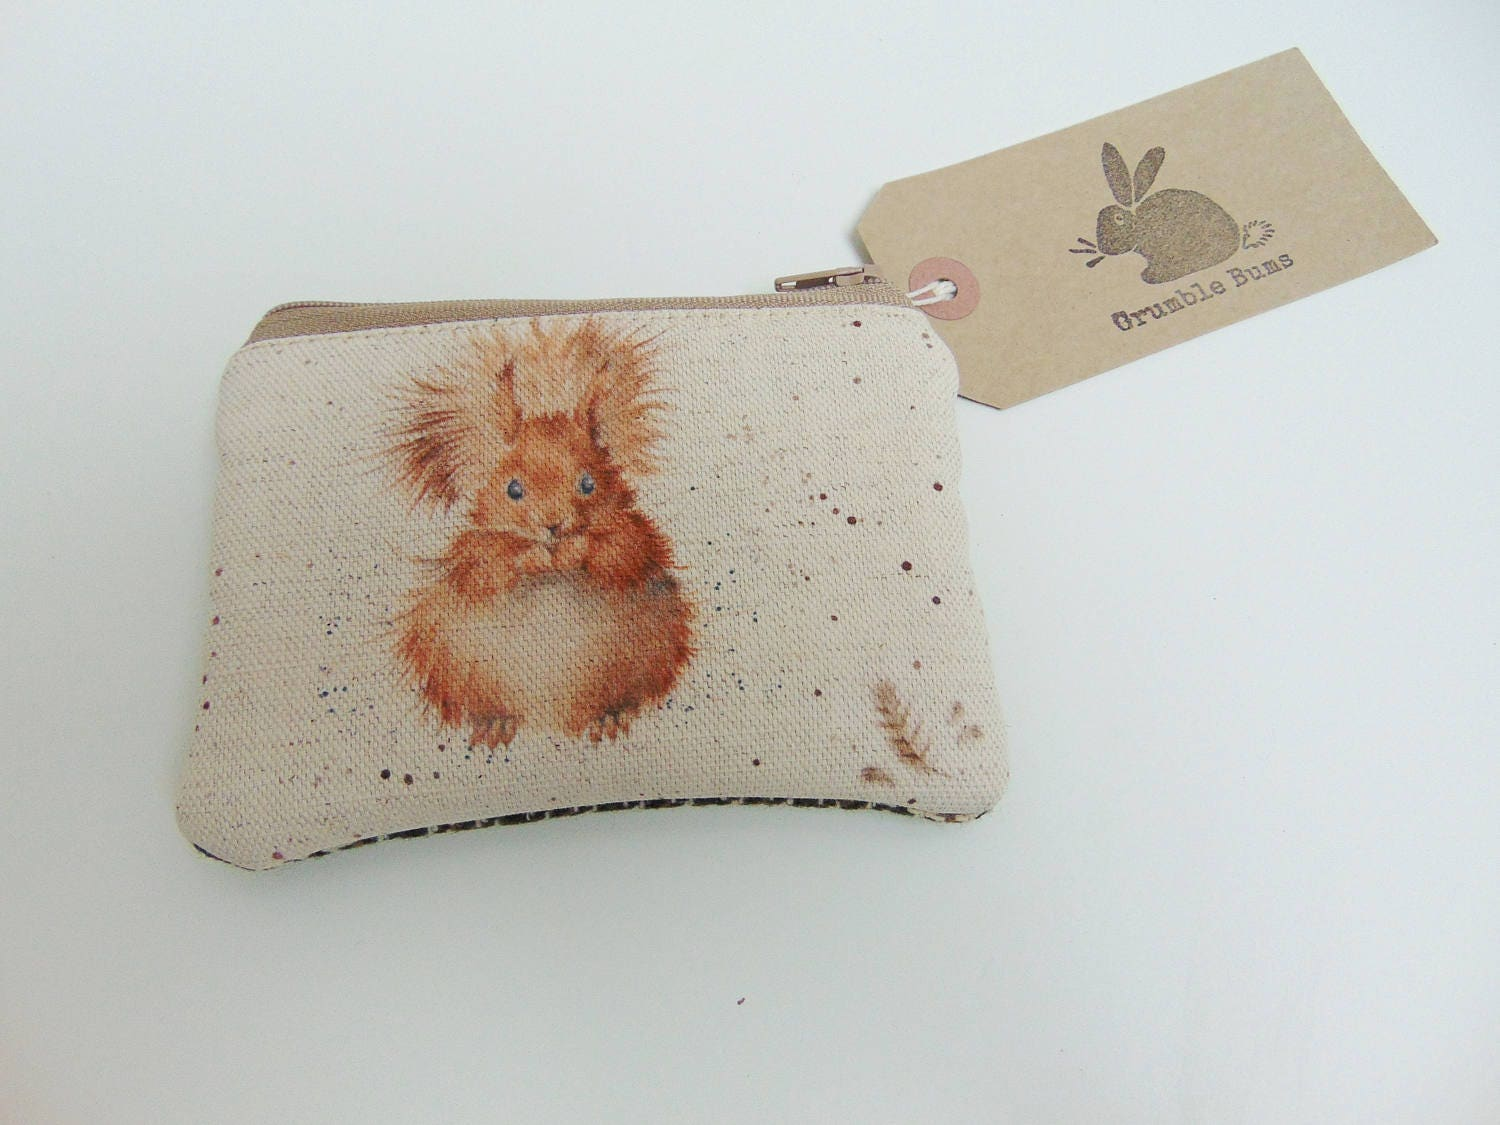 Handmade Squirrel Coin Purse Wrendale Woodland Animal Fabric Country Tweed Wallet